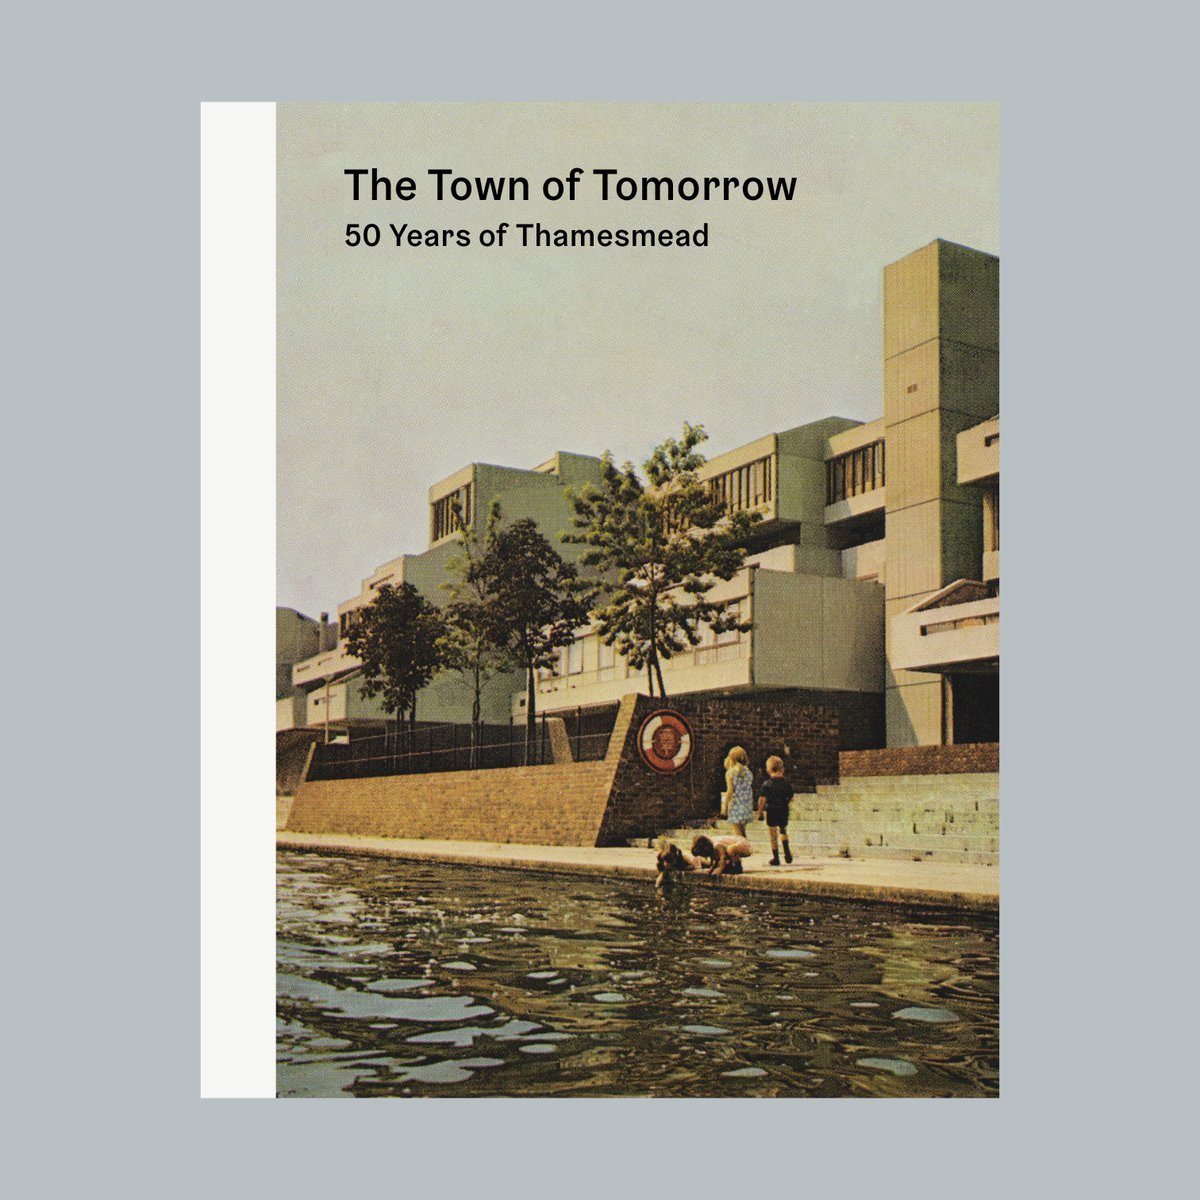 i am giving a talk at @DesignMuseum about Thamesmead with @bnwvr @HEREONTHEWEB and Tara Darby on Wed 11 September. For further info: designmuseum.org/whats-on/talks…